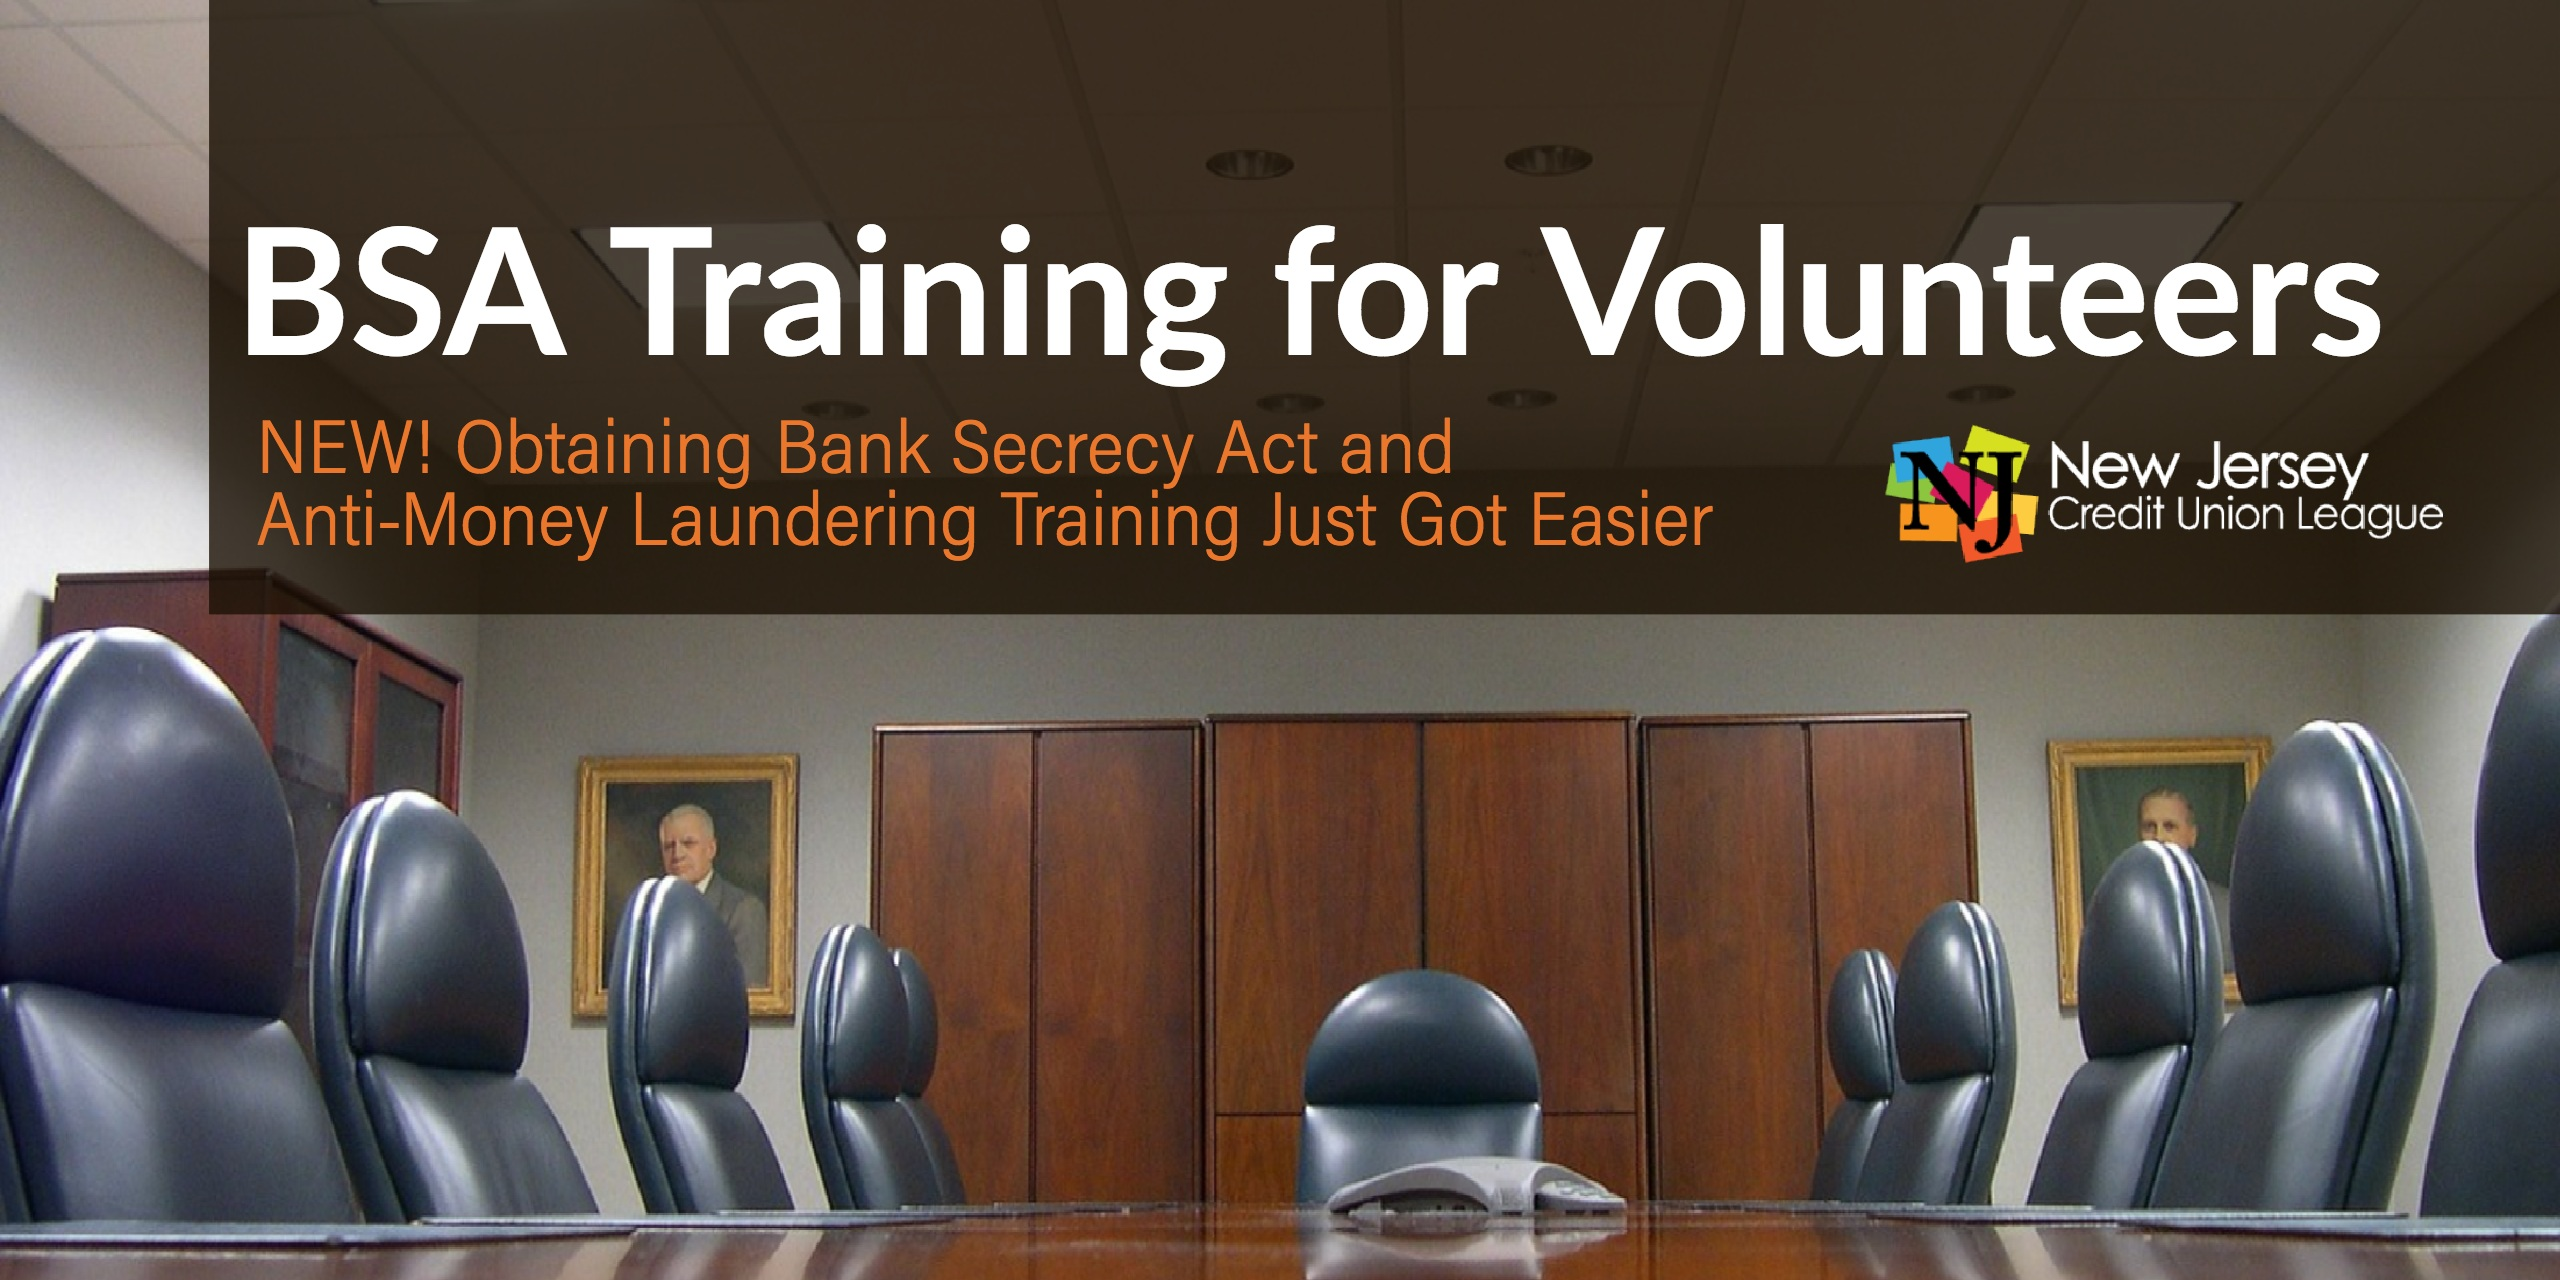 2018 BSA Training for Credit Union Volunteers